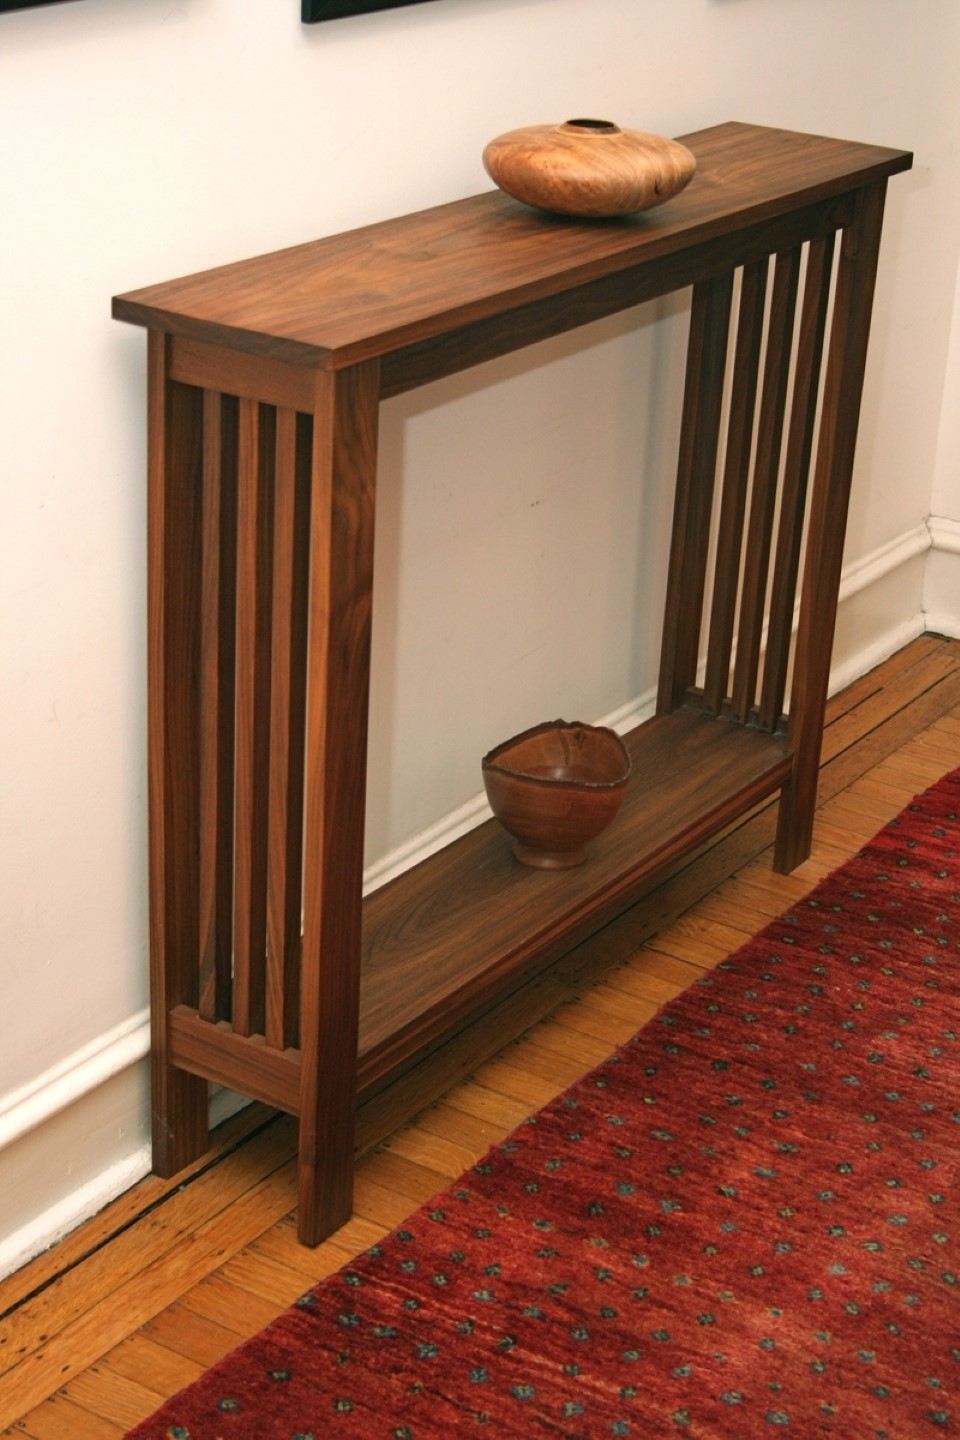 Simple Natural Wooden Small Console Table For Hallway Idea With Traditional  Pottery On Wooden Floor With